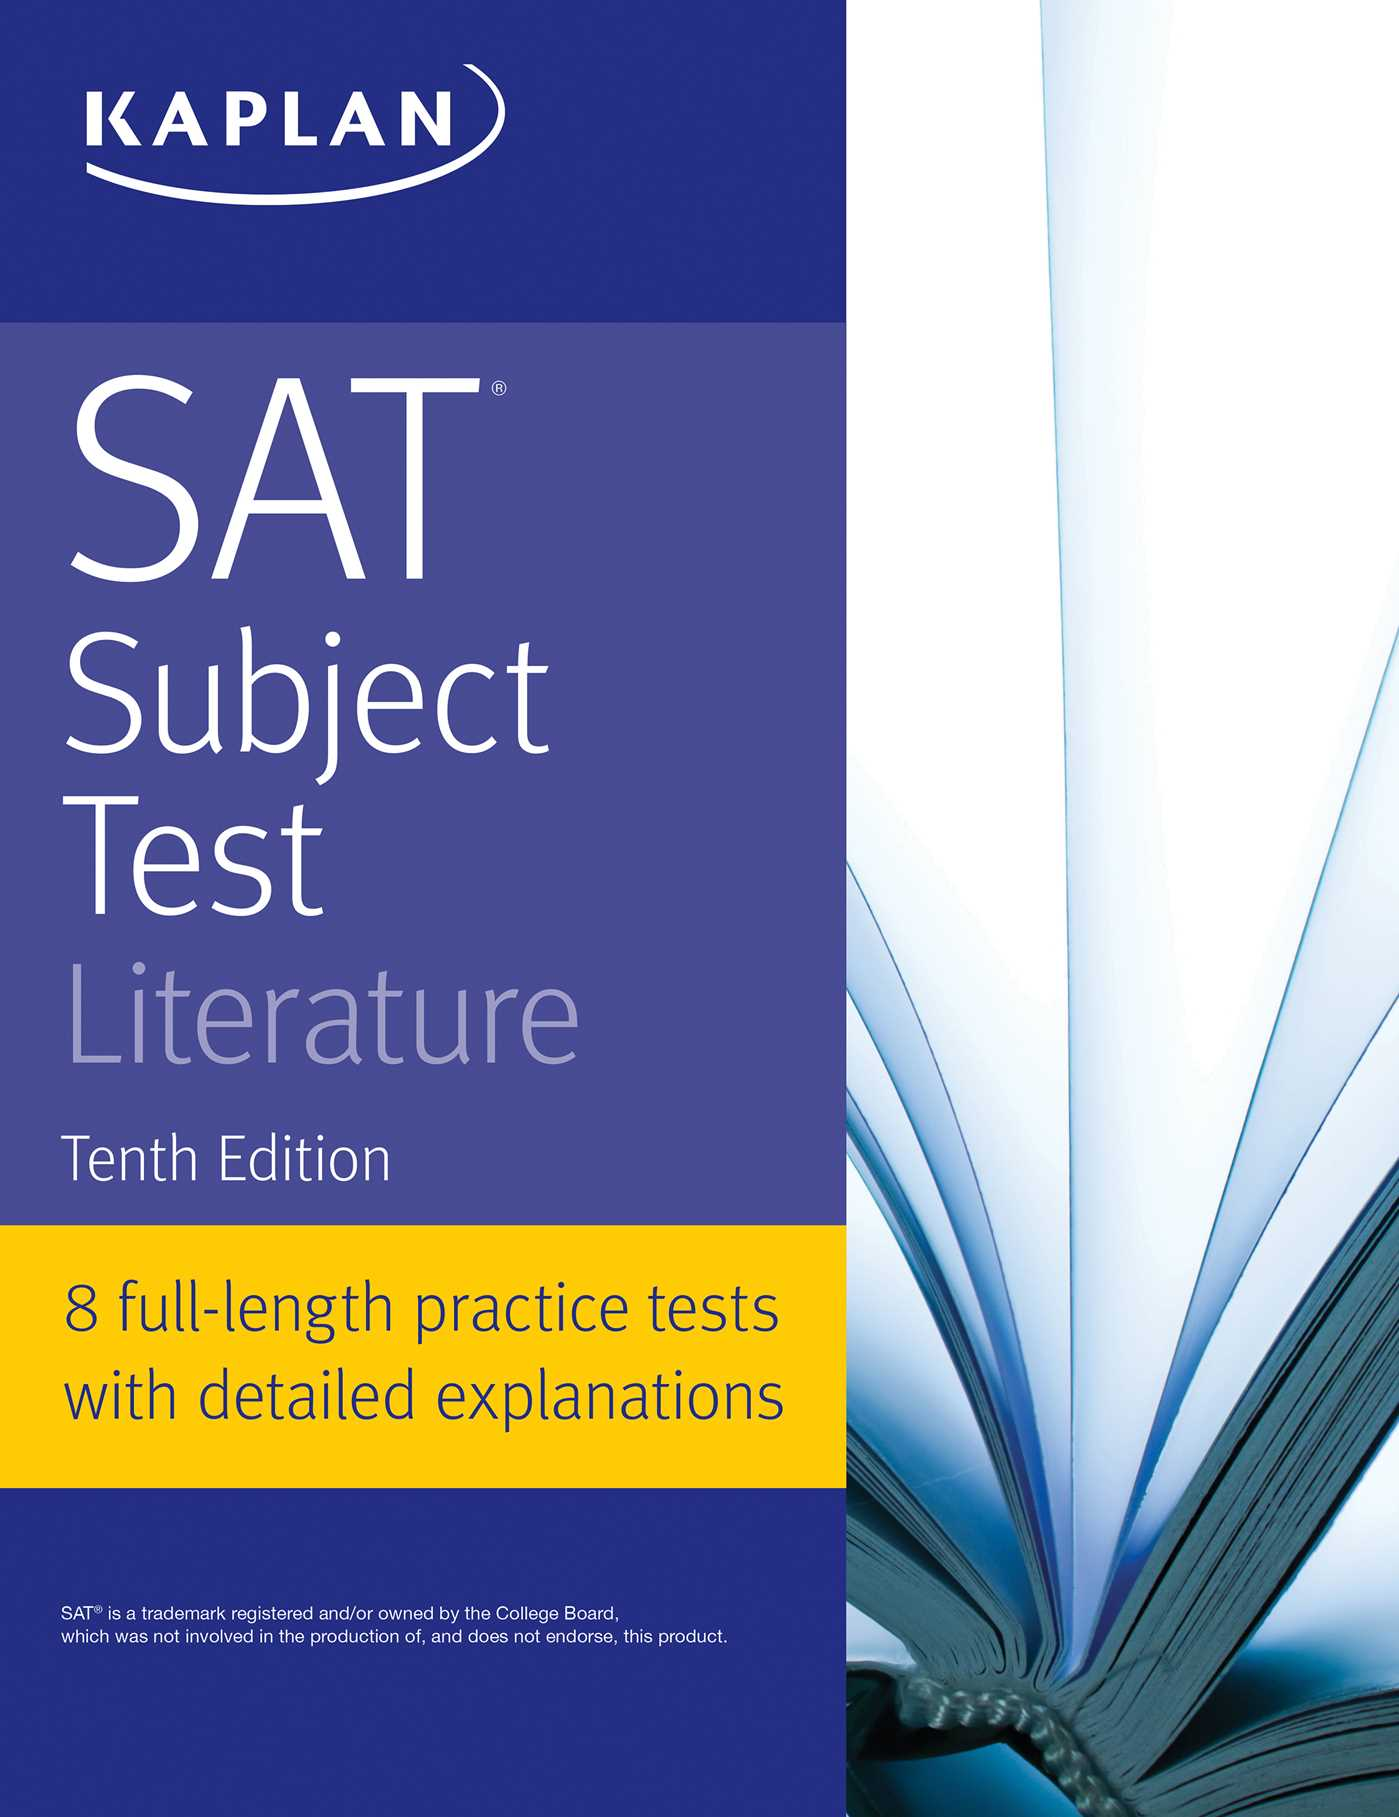 Sat subject test literature ebook by kaplan test prep official tenth edition ebook 9781506212760 fandeluxe Image collections